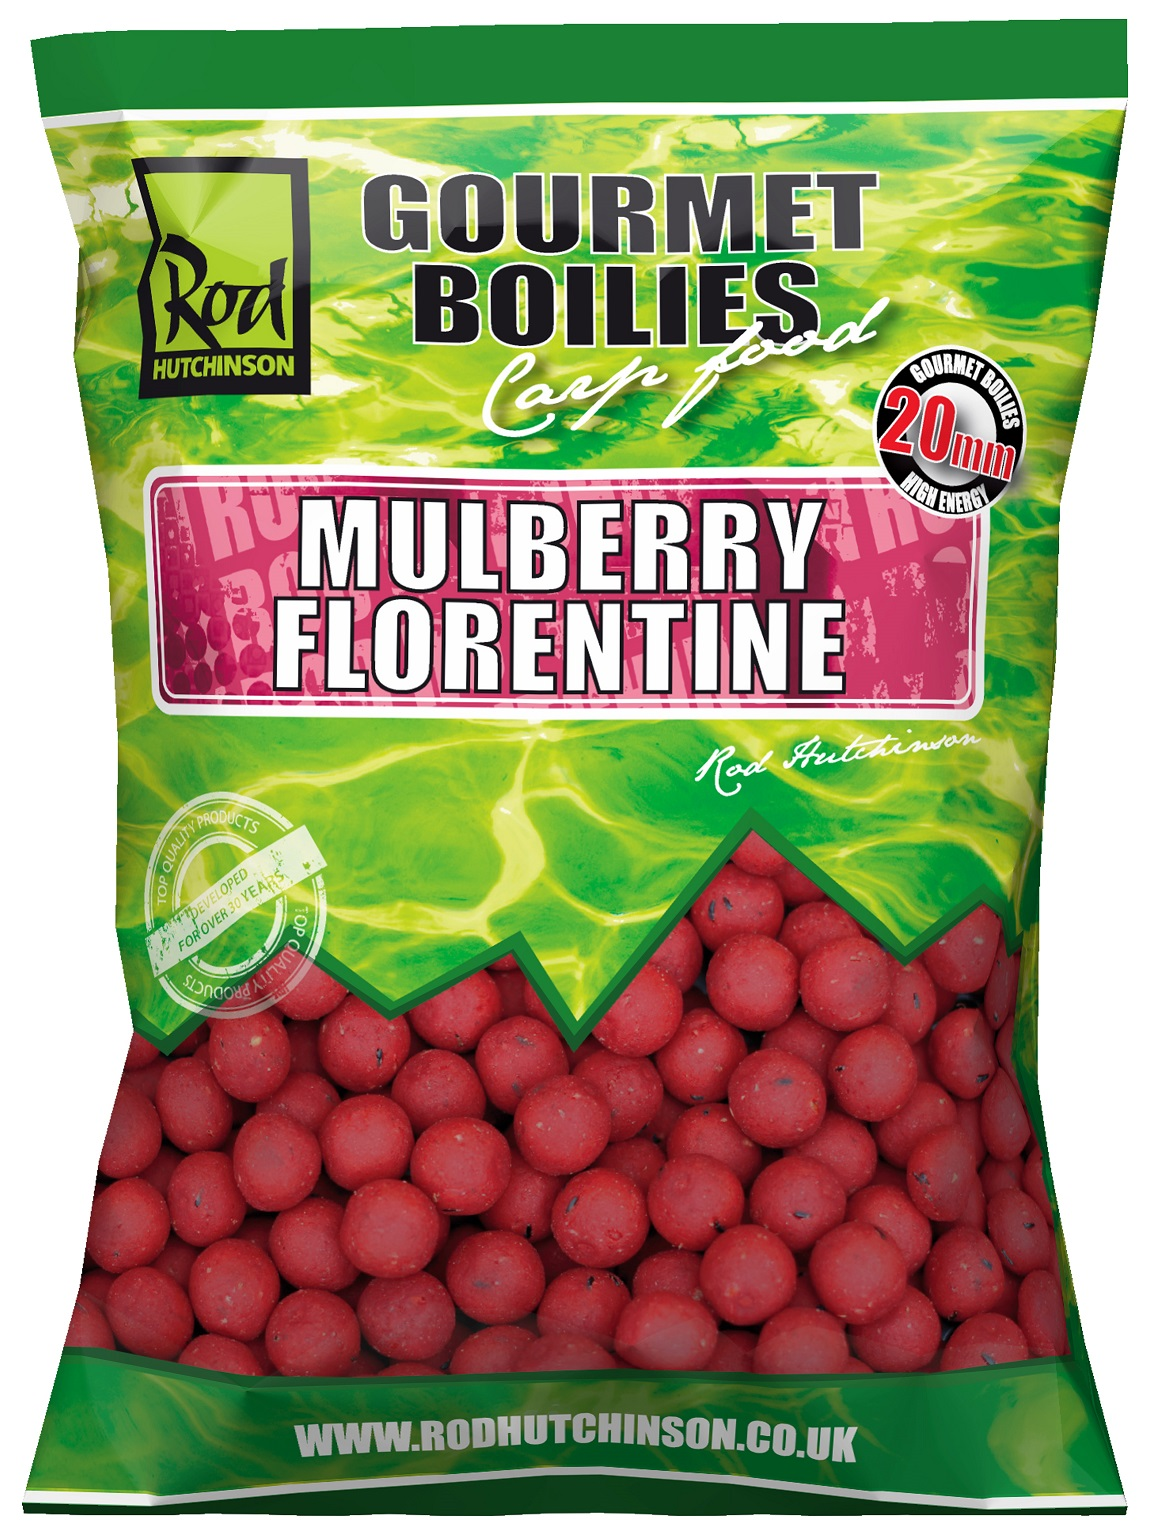 RH Boilies Mulberry Florentine with Protaste Plus  20mm 1kg